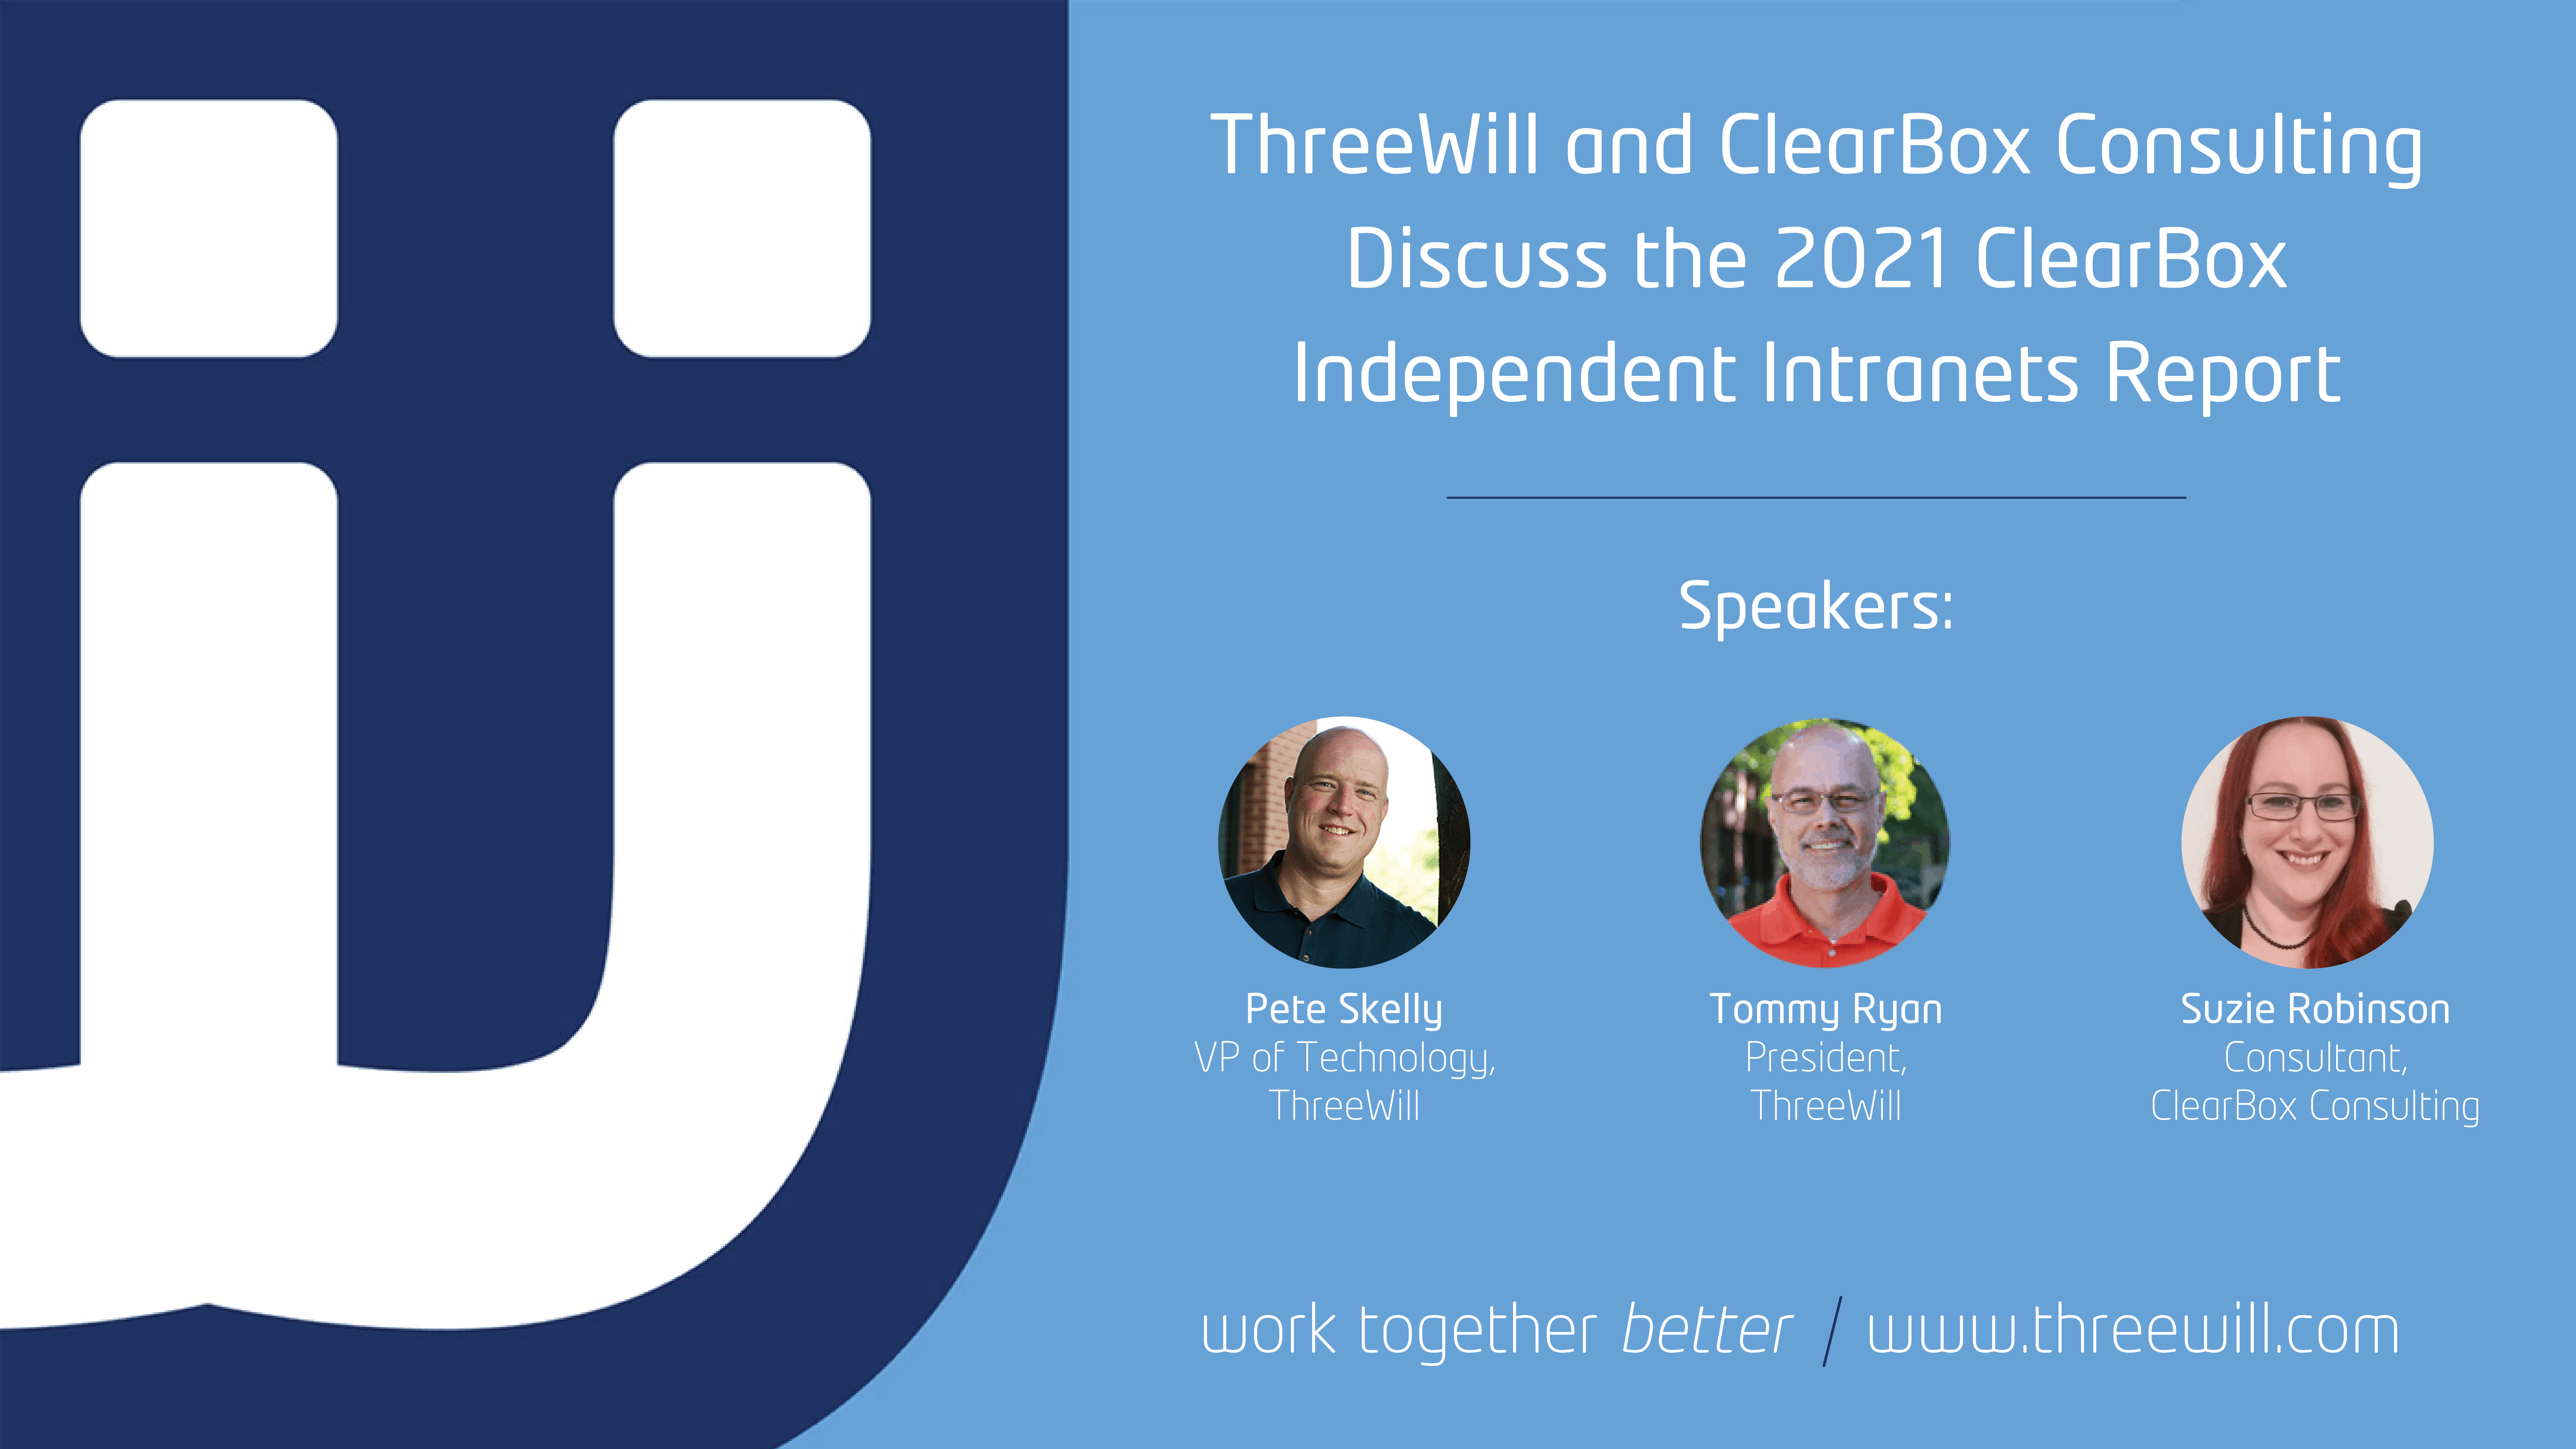 ThreeWill and ClearBox Consulting discuss the Independent Intranets Report